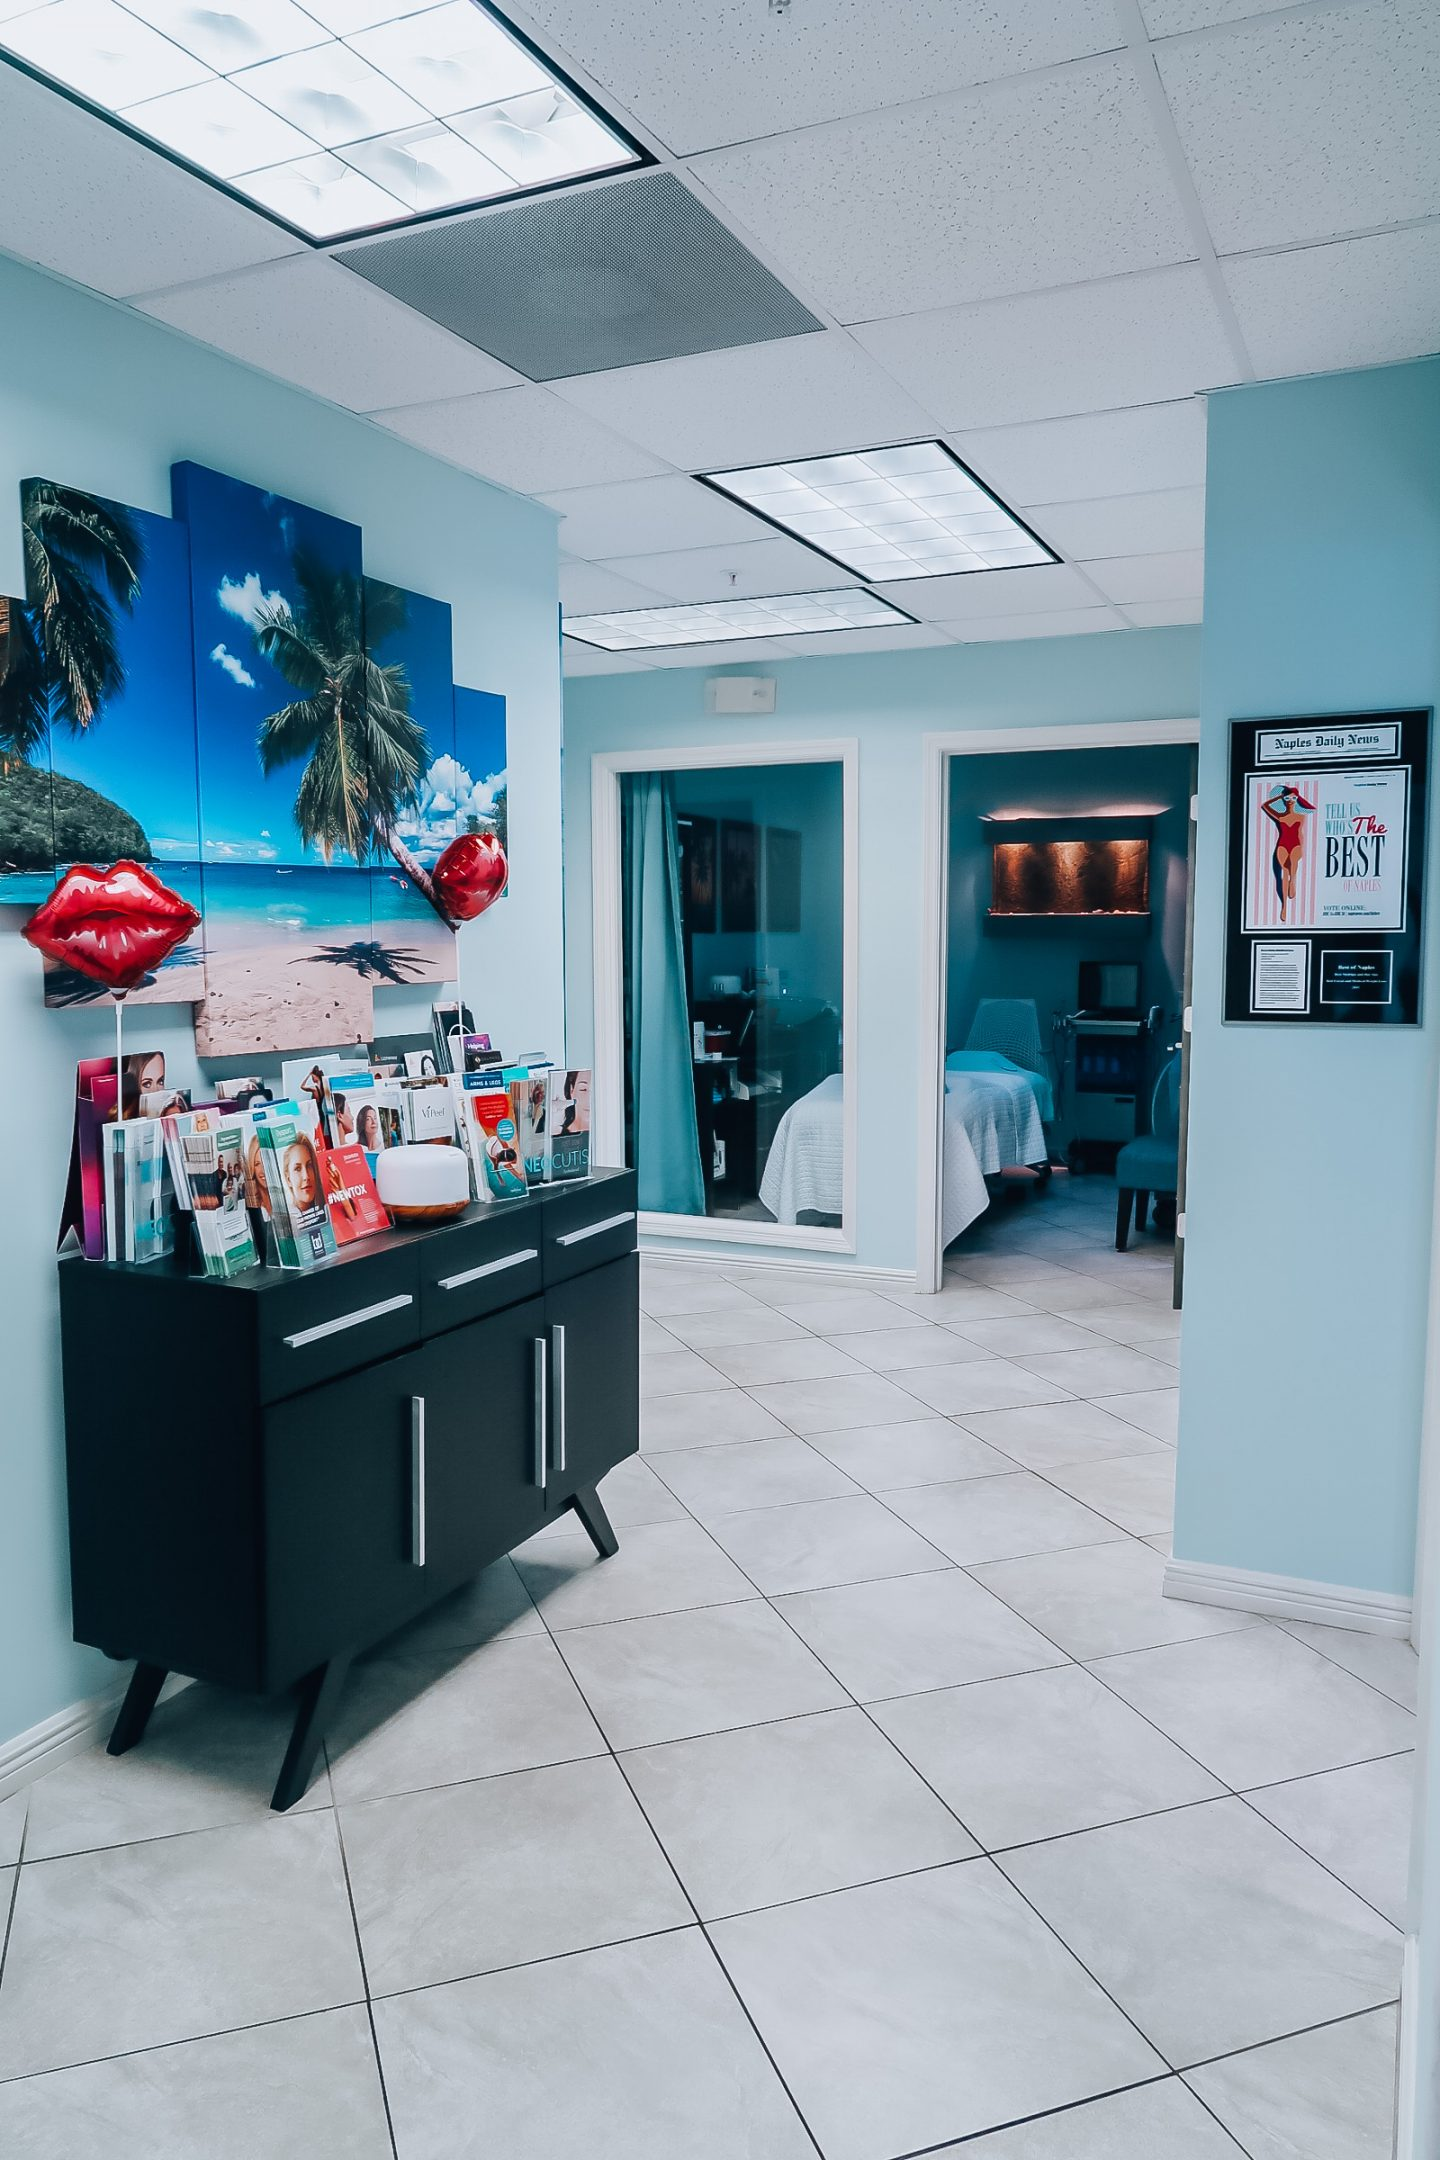 Naples, FL Medical Spa Review - Pura Vida